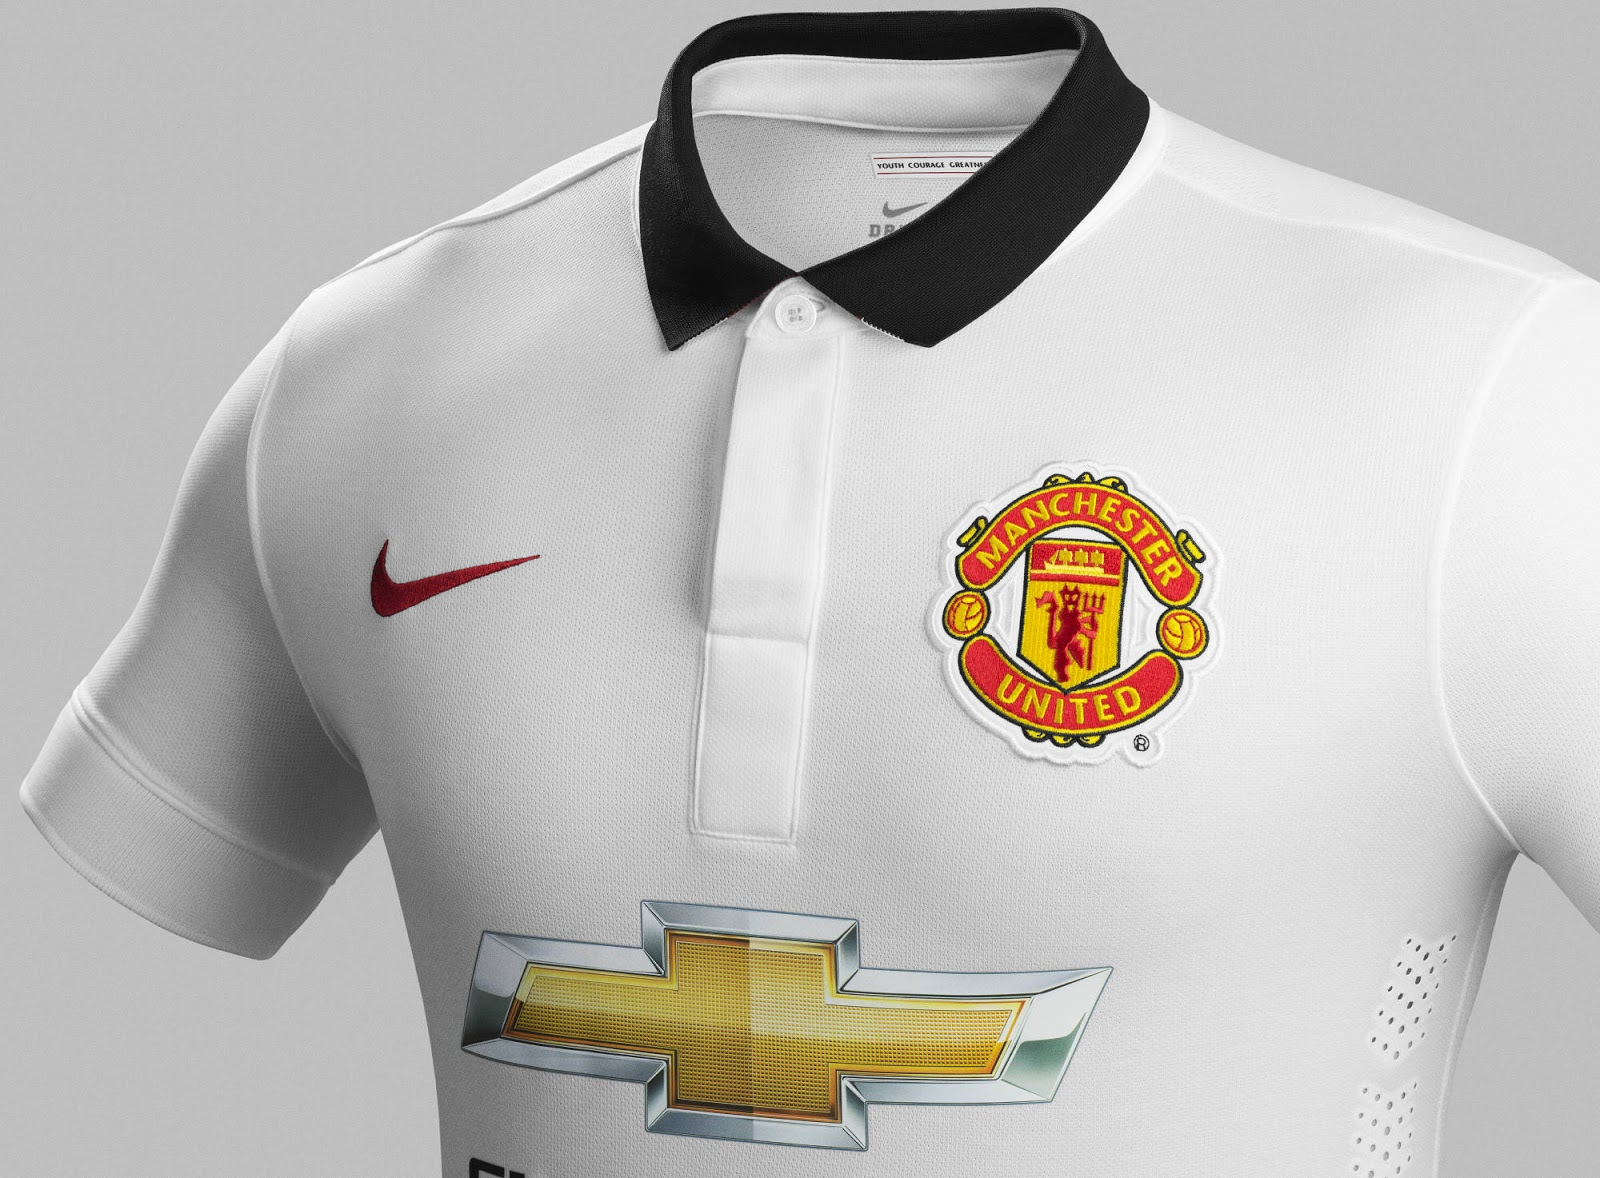 Manchester United 14-15 Away Kit are black  red  the socks are whiteManchester United 2014 Away Kit